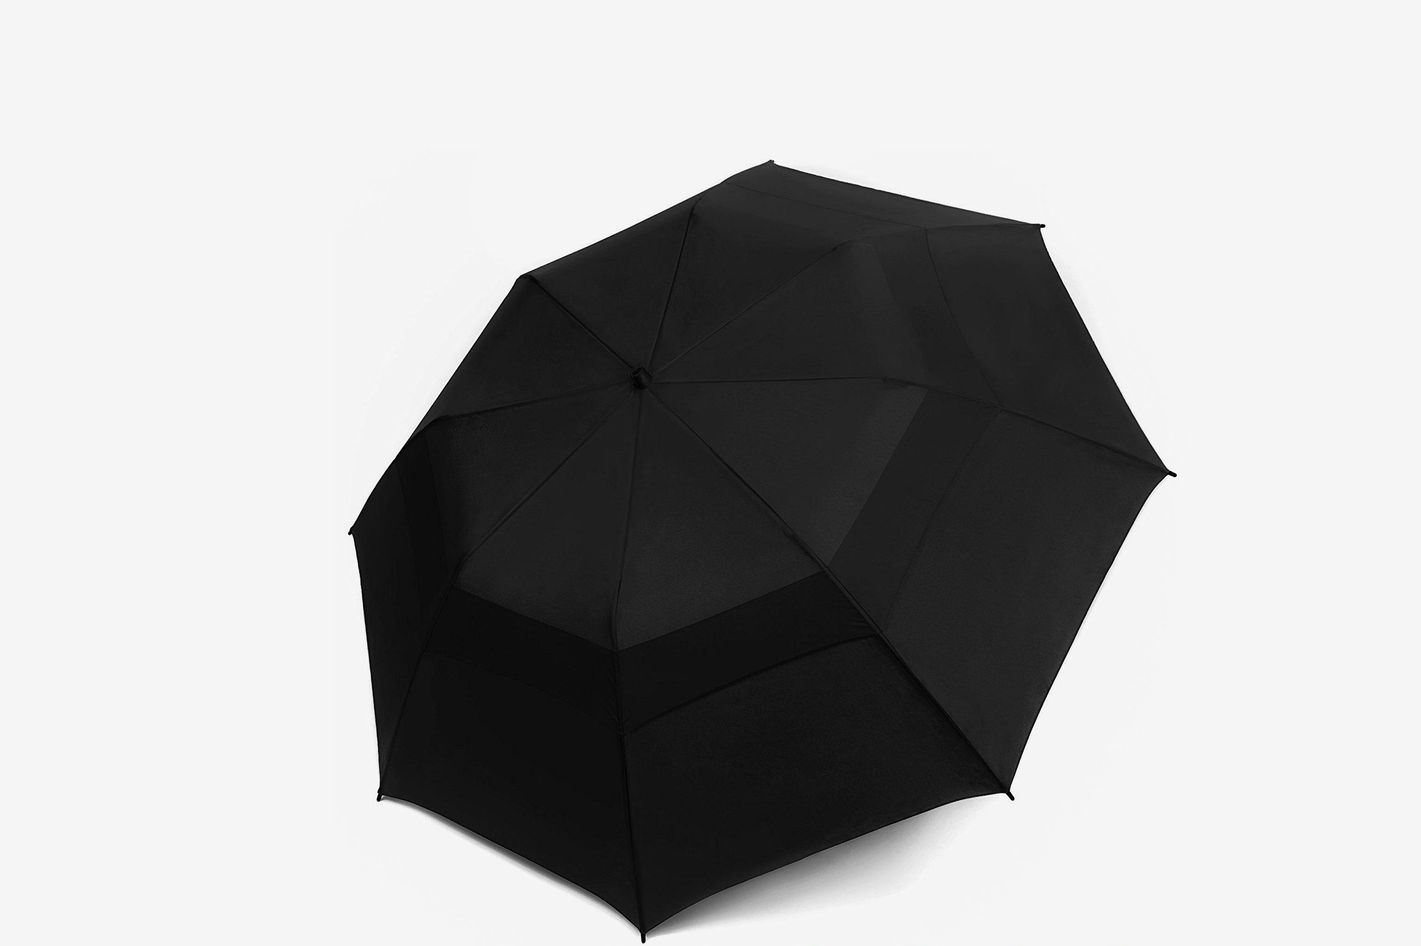 Best Compact Umbrella